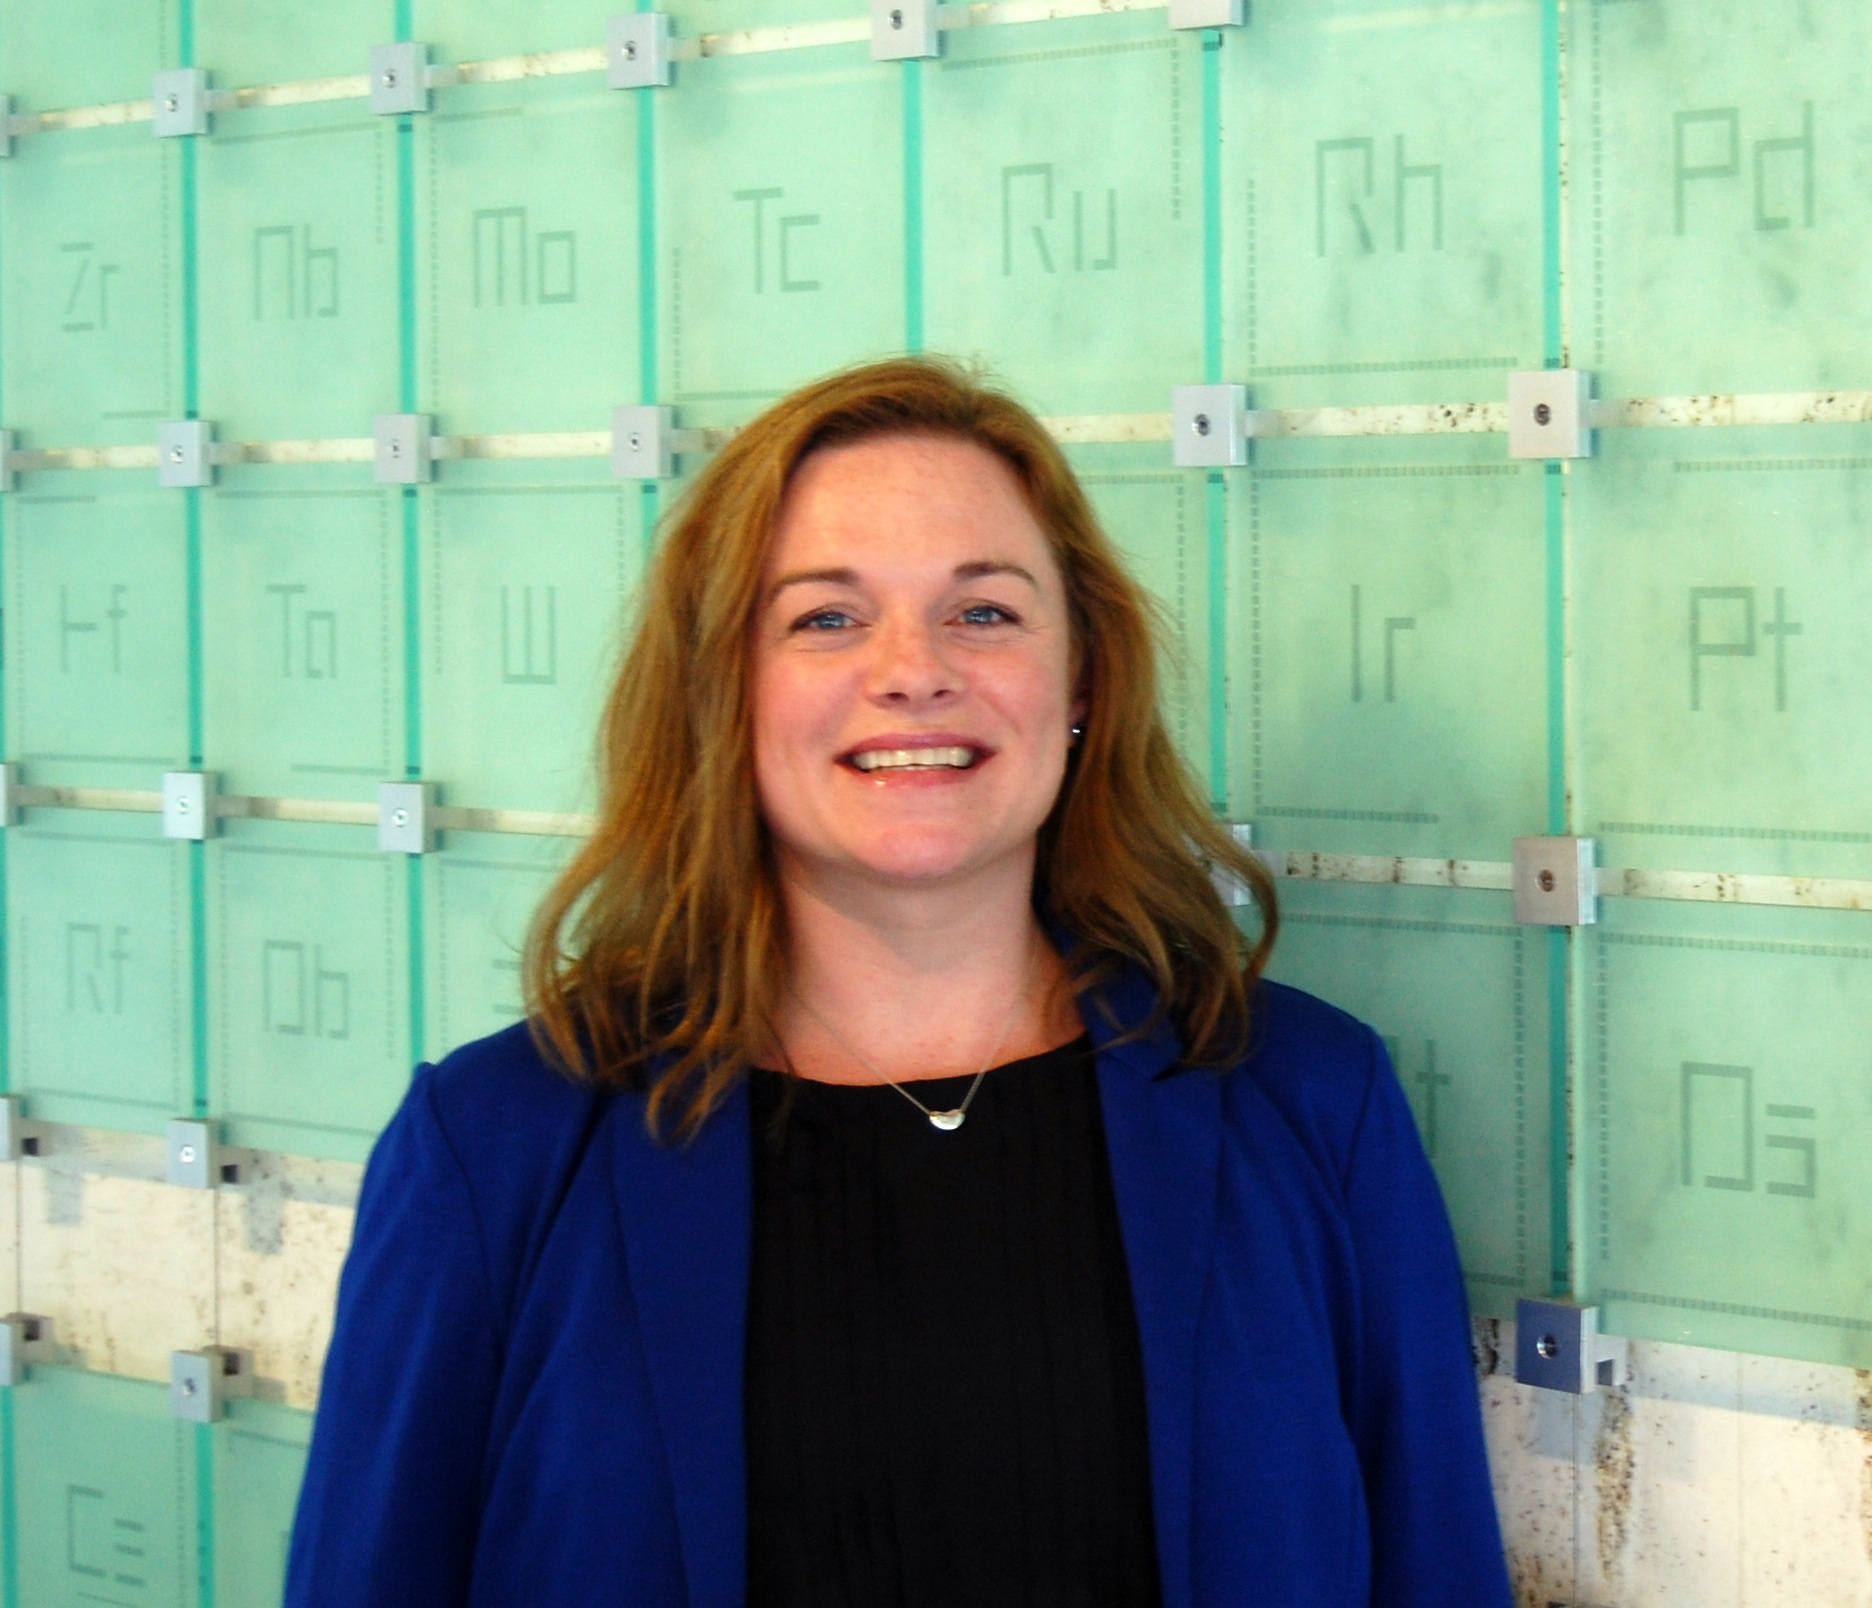 Macall Zimmerman smiles in front of a glass sculpture of the periodic table